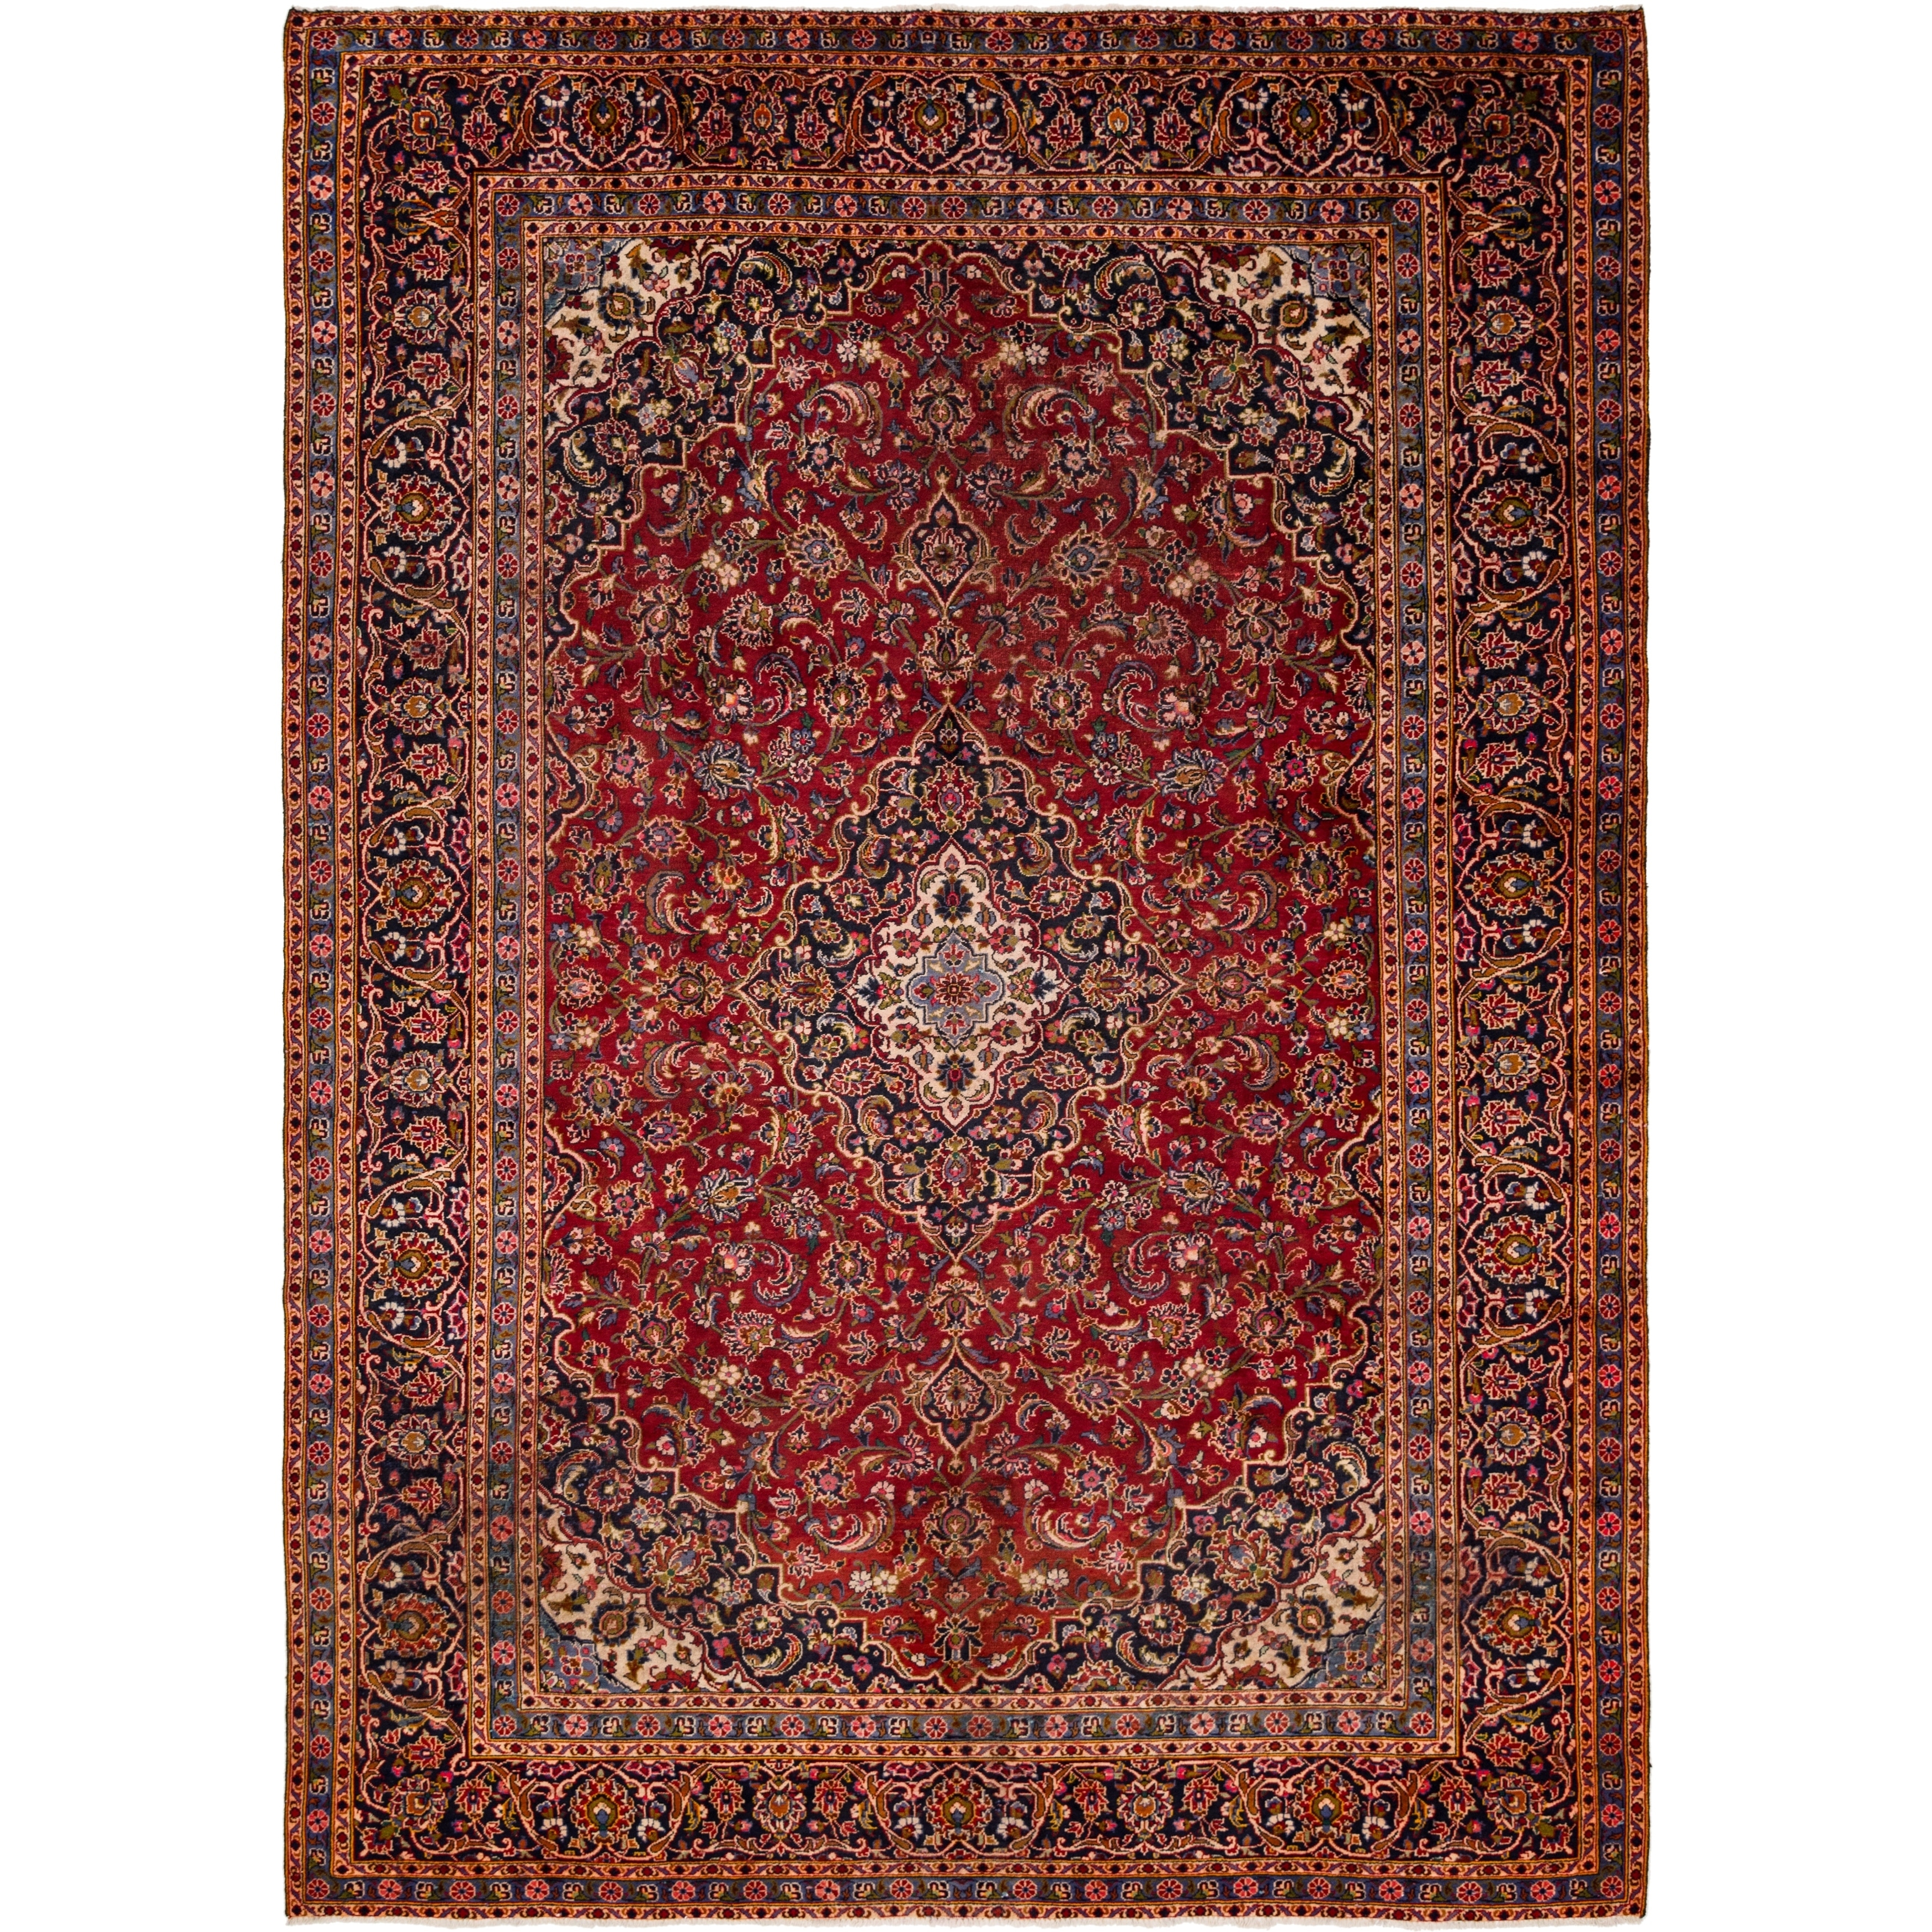 Hand Knotted Kashan Semi Antique Wool Area Rug - 9 6 x 13 4 (Red - 9 6 x 13 4)